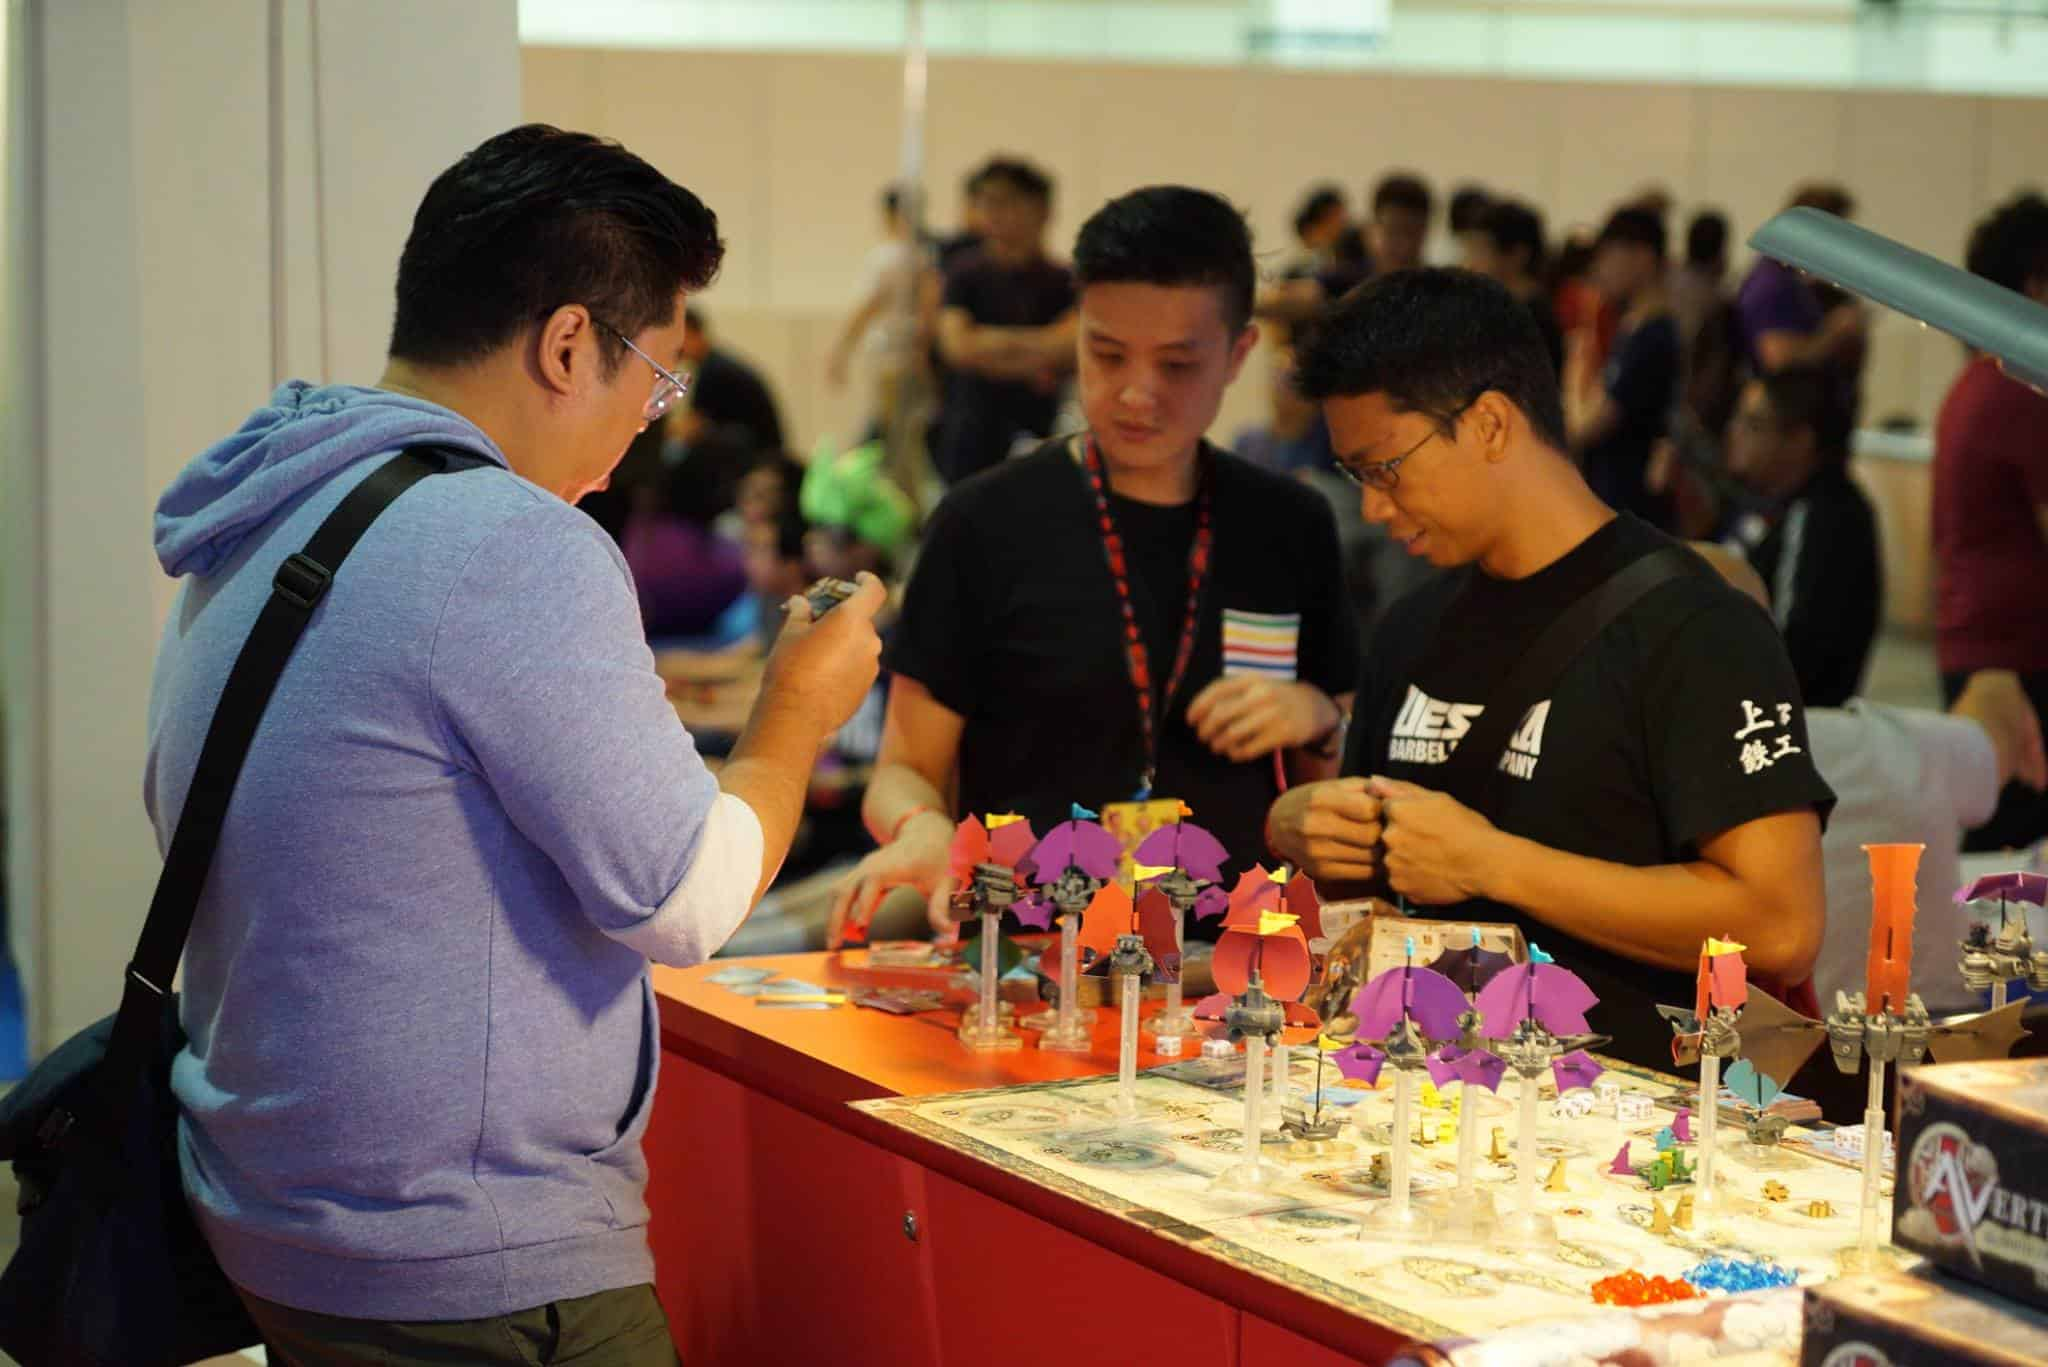 People checking out Avertigos at Singapore Toy, Game and Comic Convention. Source.